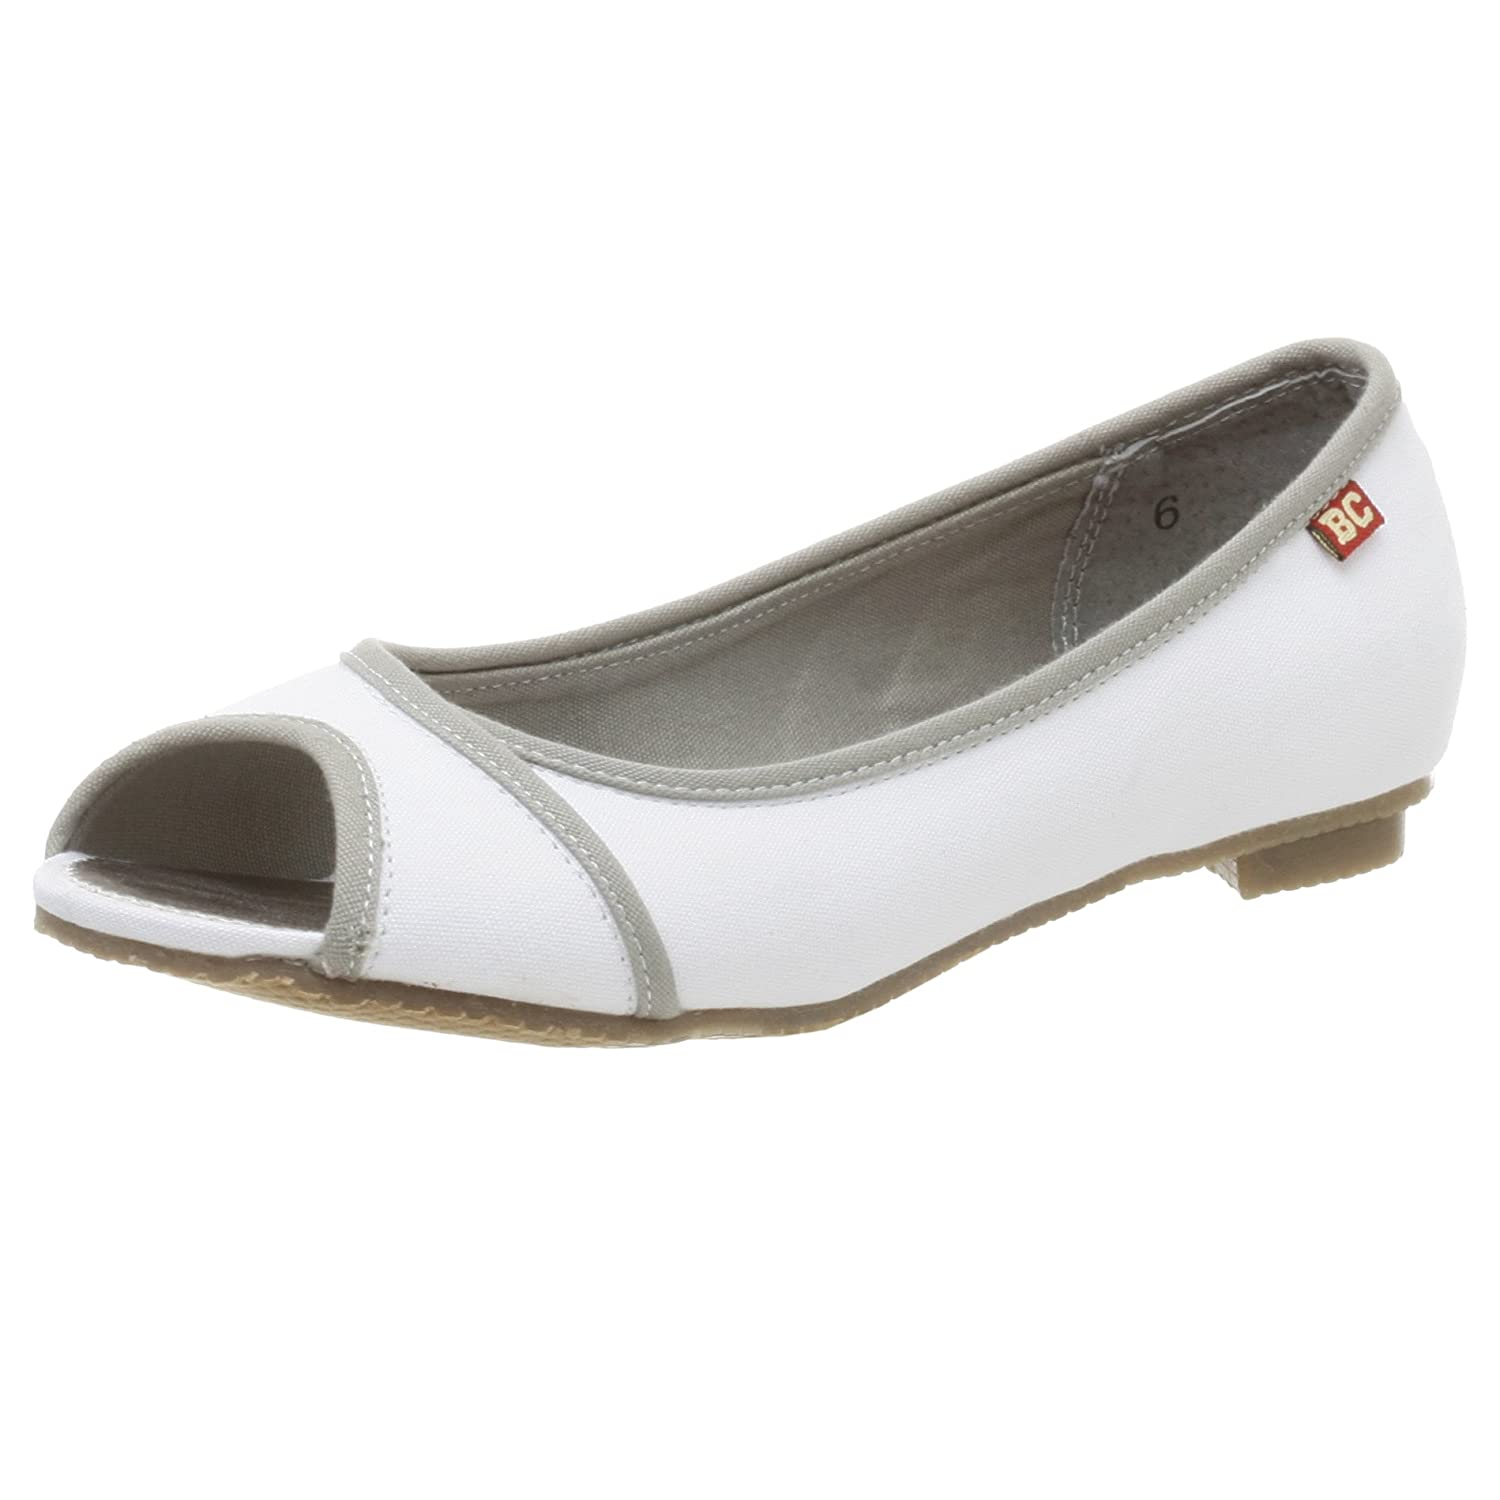 BC Footwear Women's Skinny Dippin Open Toe Flat - Free Overnight Shipping & Return Shipping: Endless.com :  piping retro flats shoes